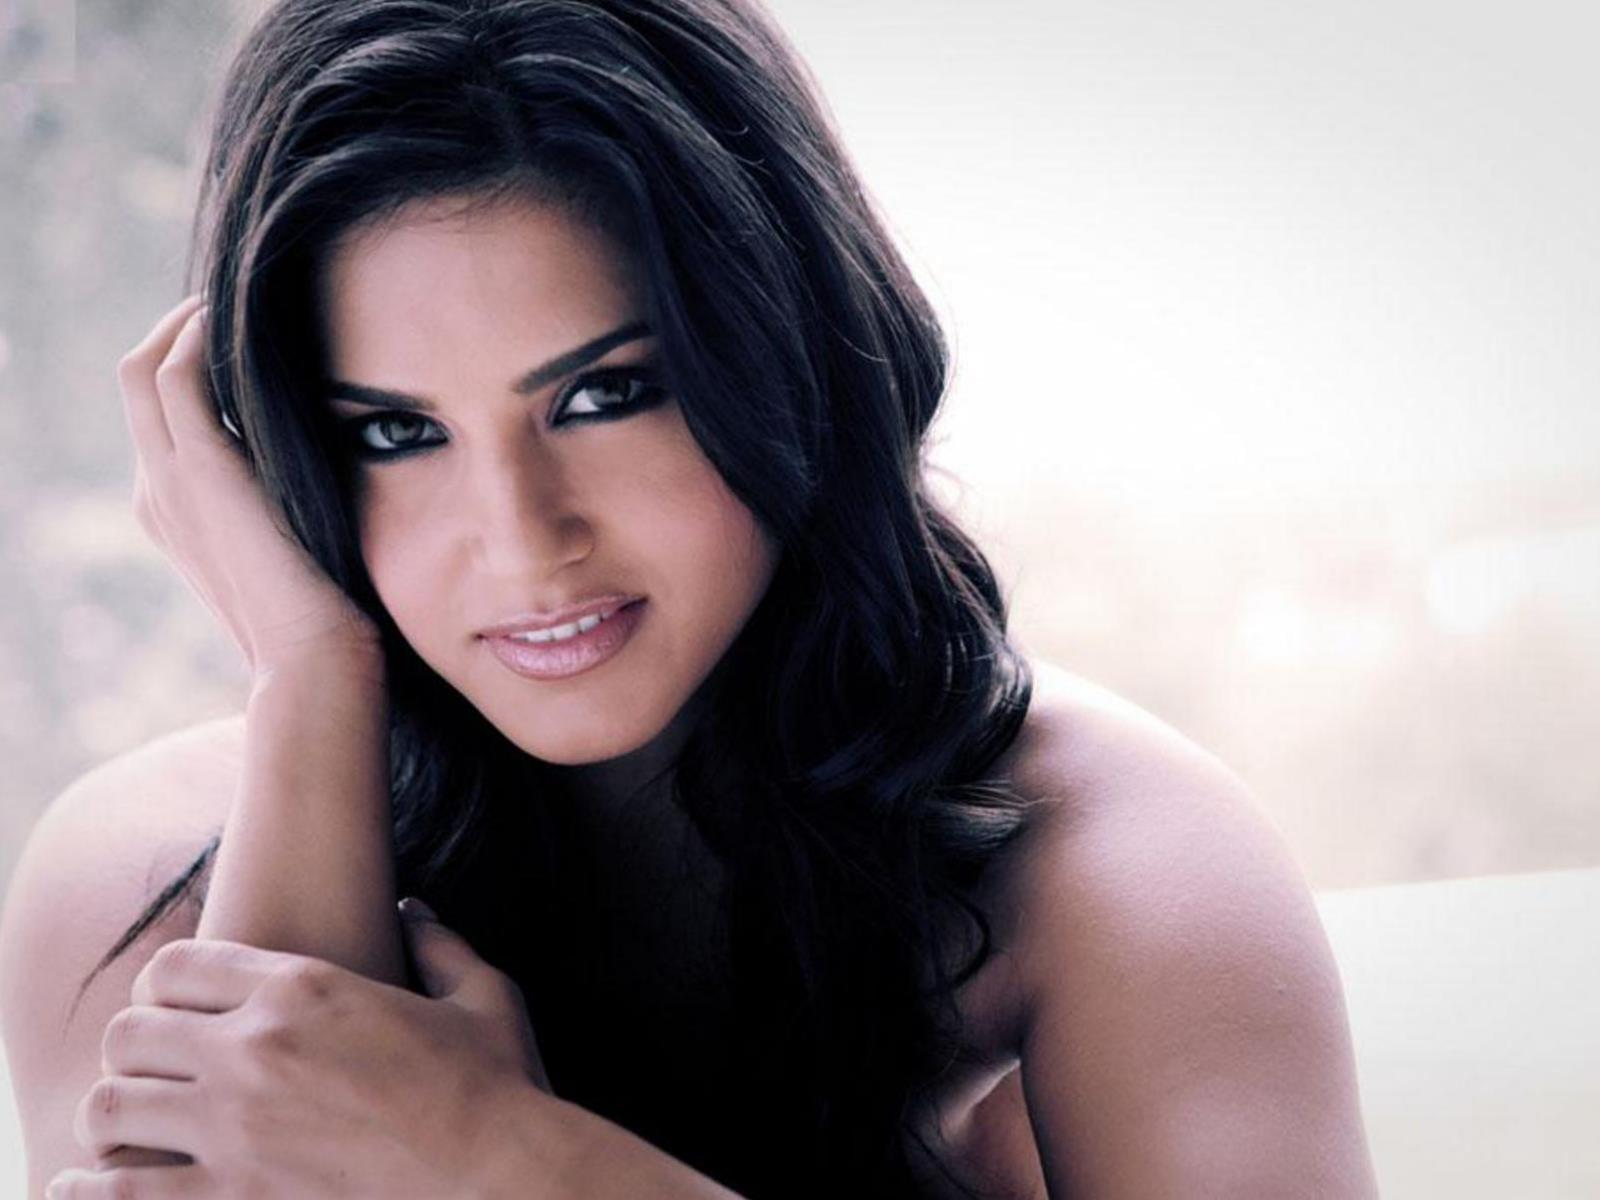 Celebrity Wallpapers: Sunny Leone HD Wallpapers 2013 | Free HD Wallpapers